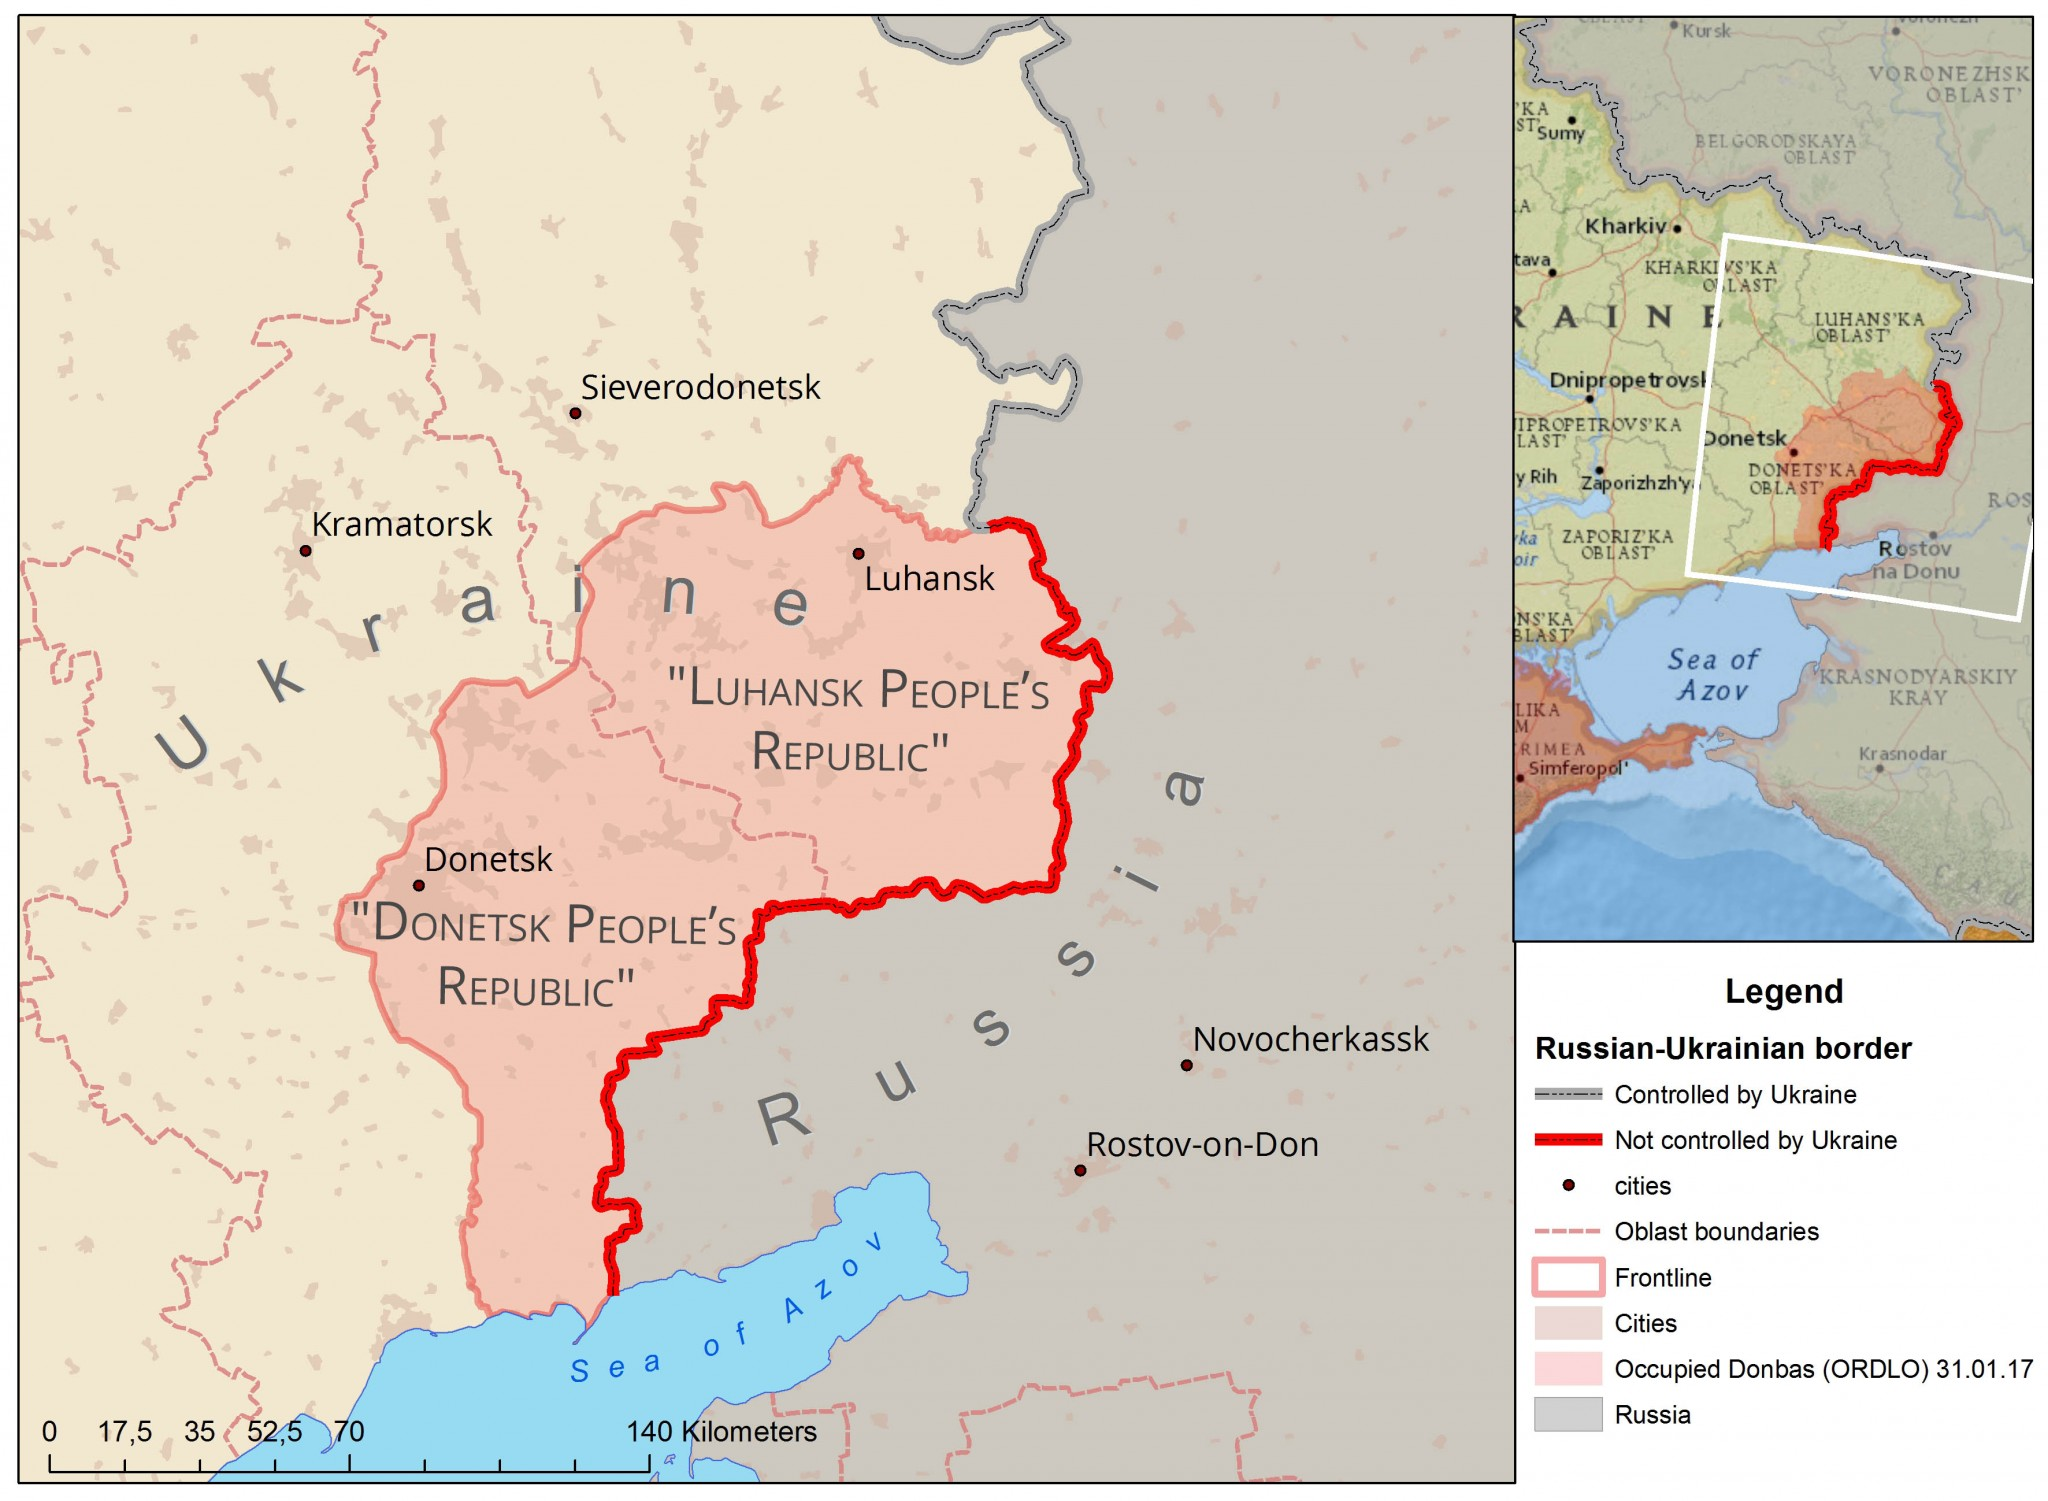 Lets talk about how many kilometers from Rostov to Crimea